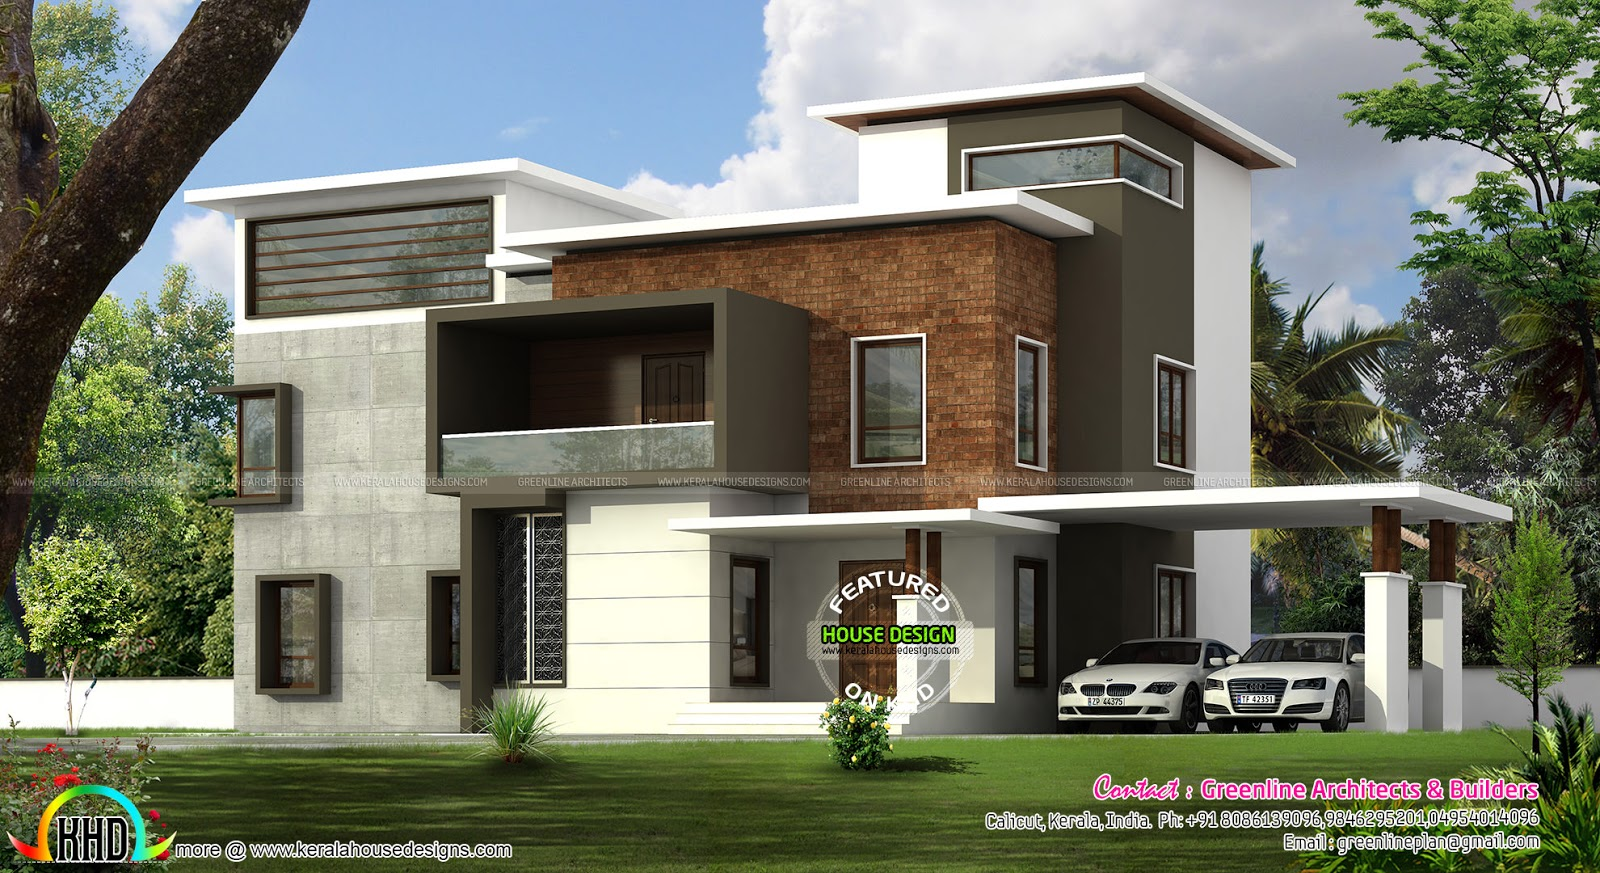 3098 sq ft box type home plan kerala home design and for Building type house design